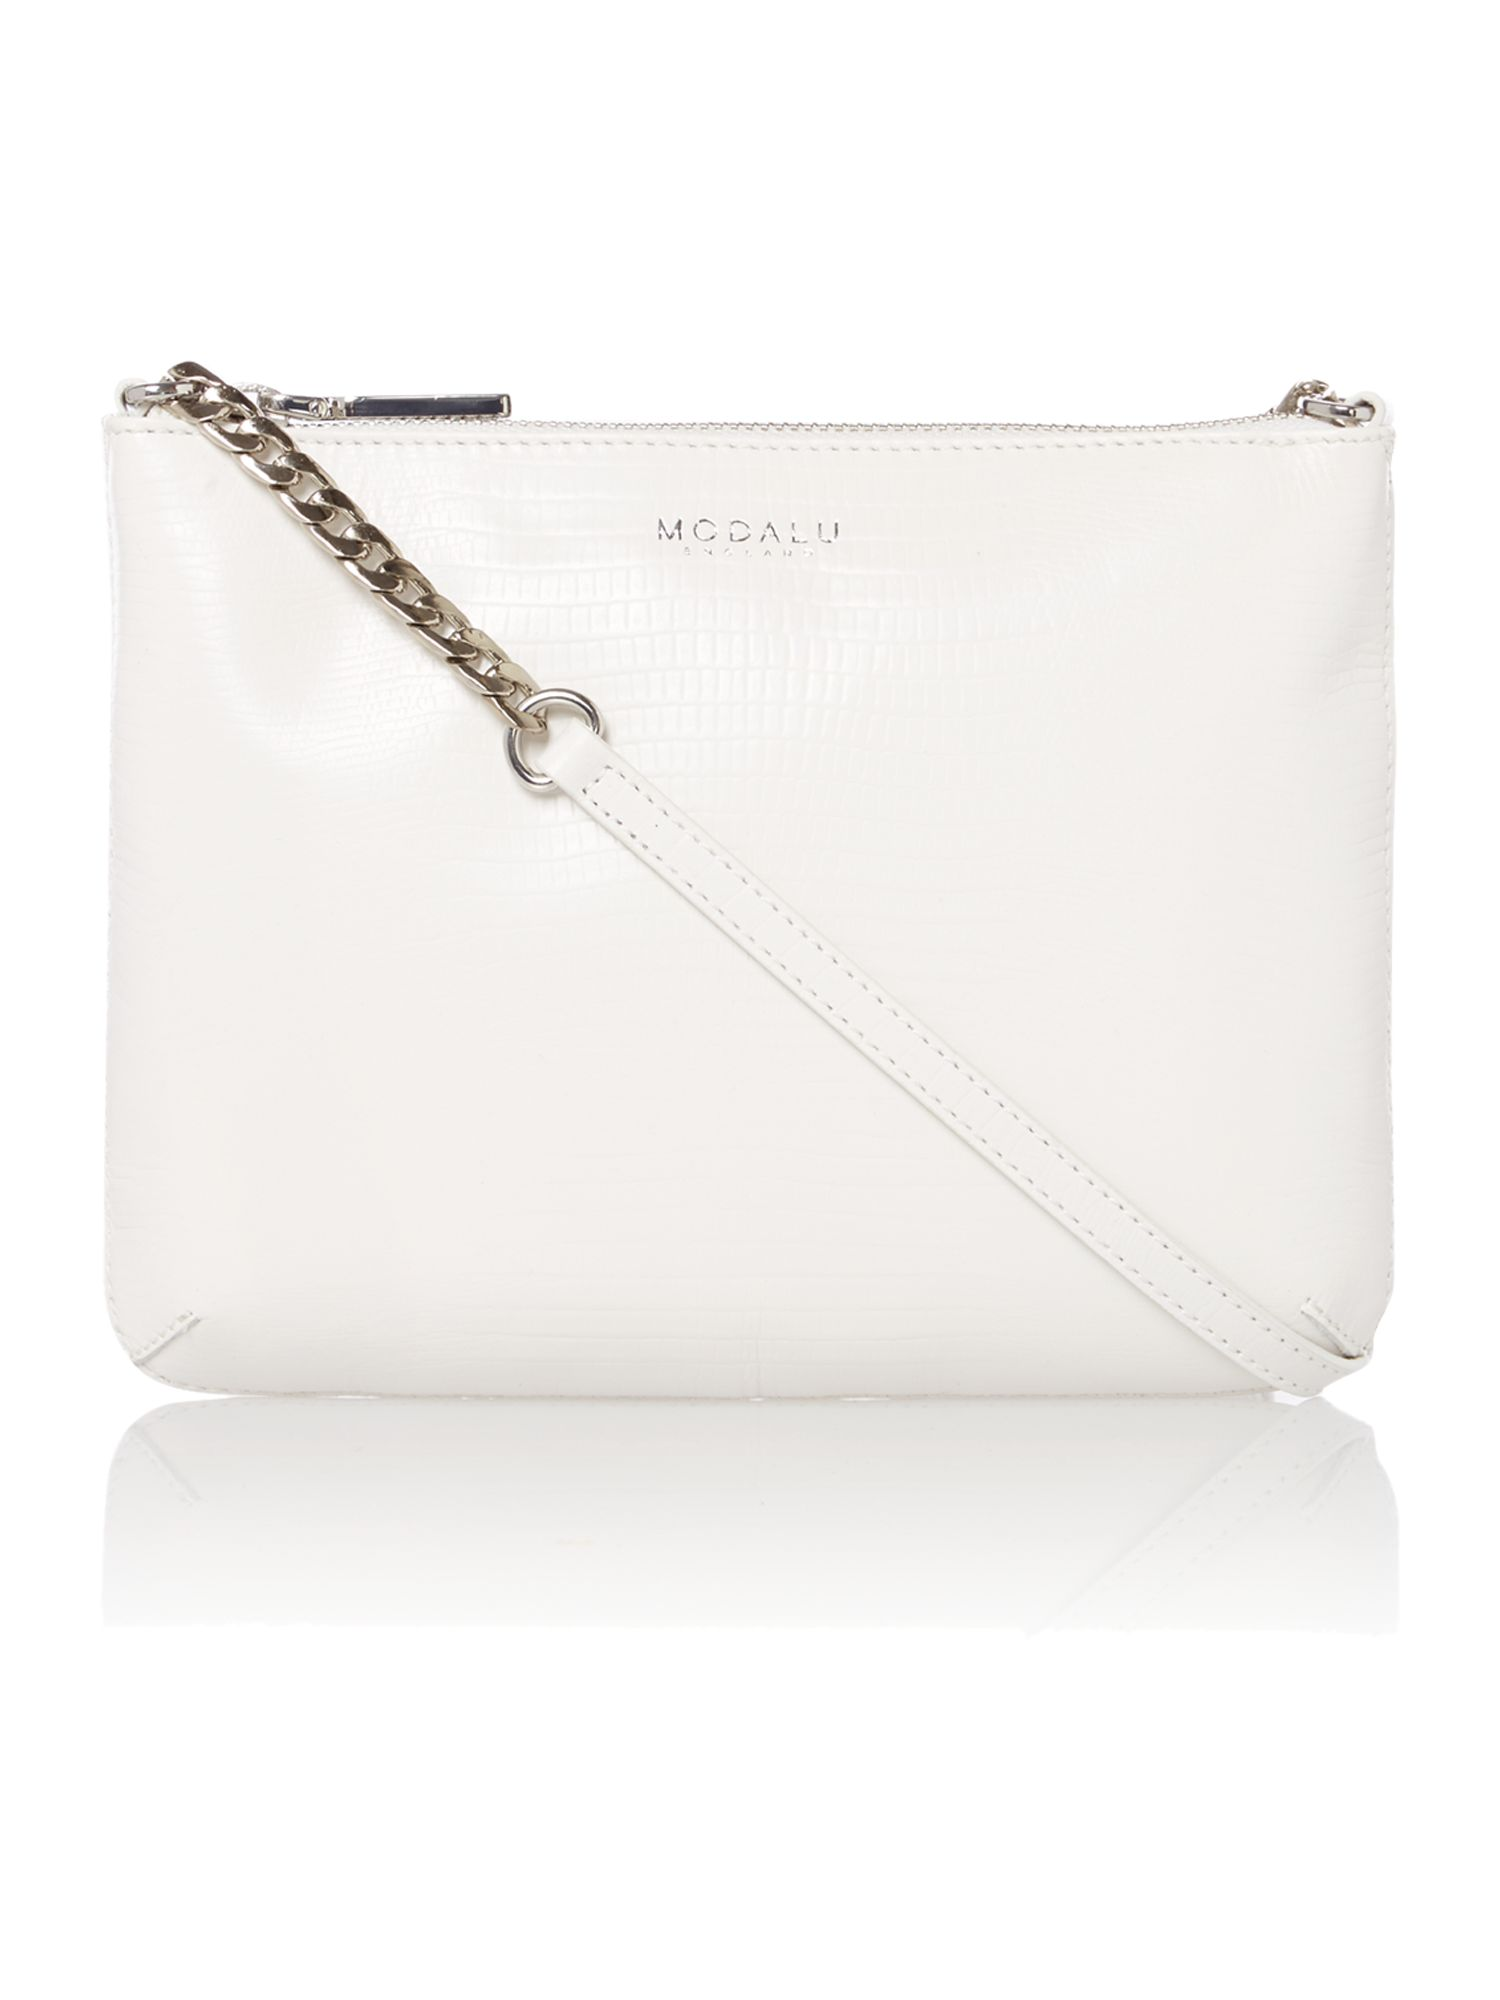 Twiggy small white cross body bag